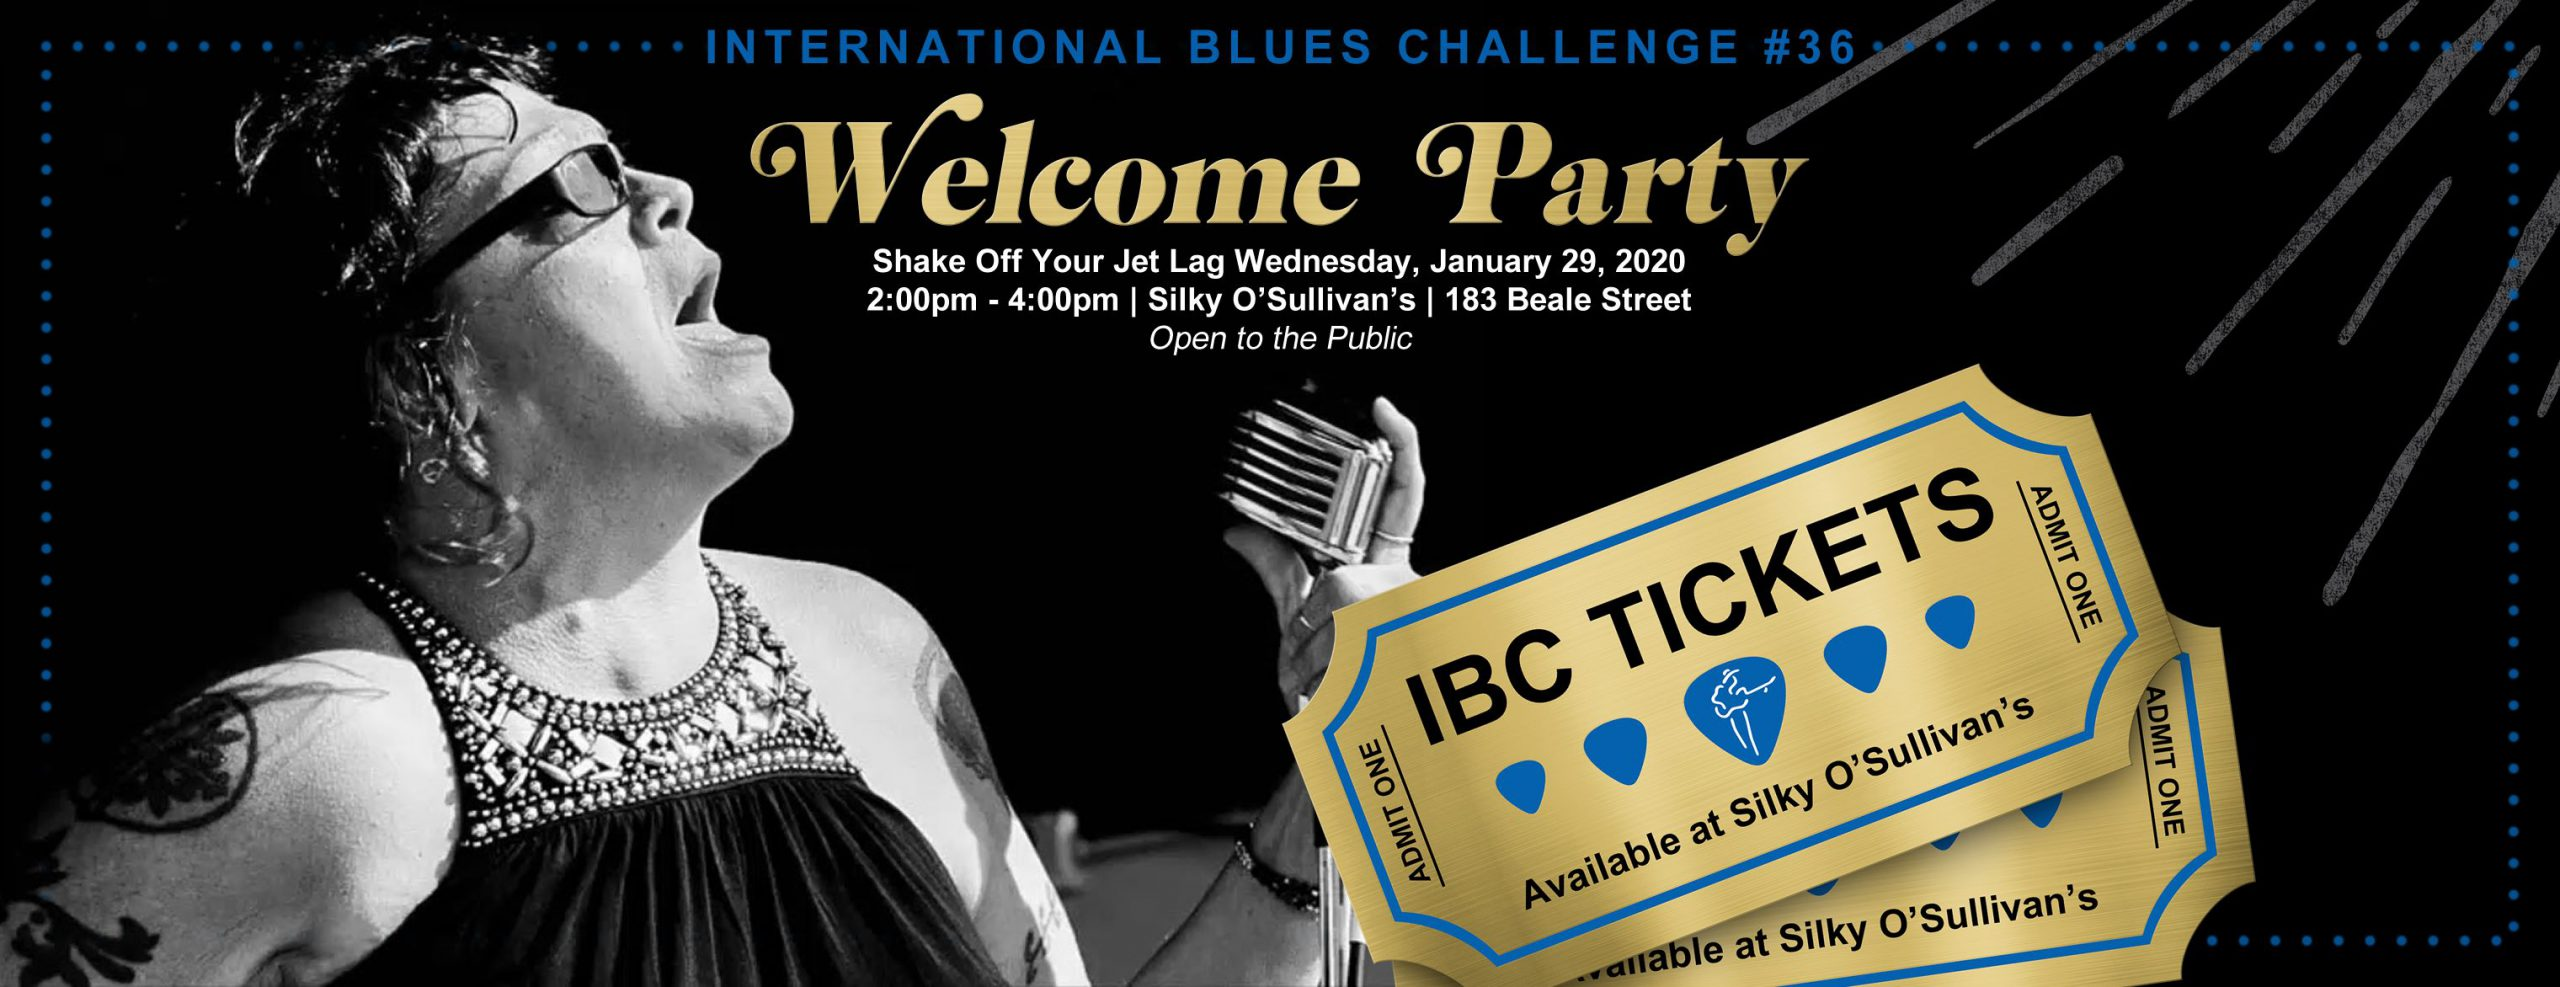 IBC International Blues Challenge Welcome Party at Silky O'Sullivan's